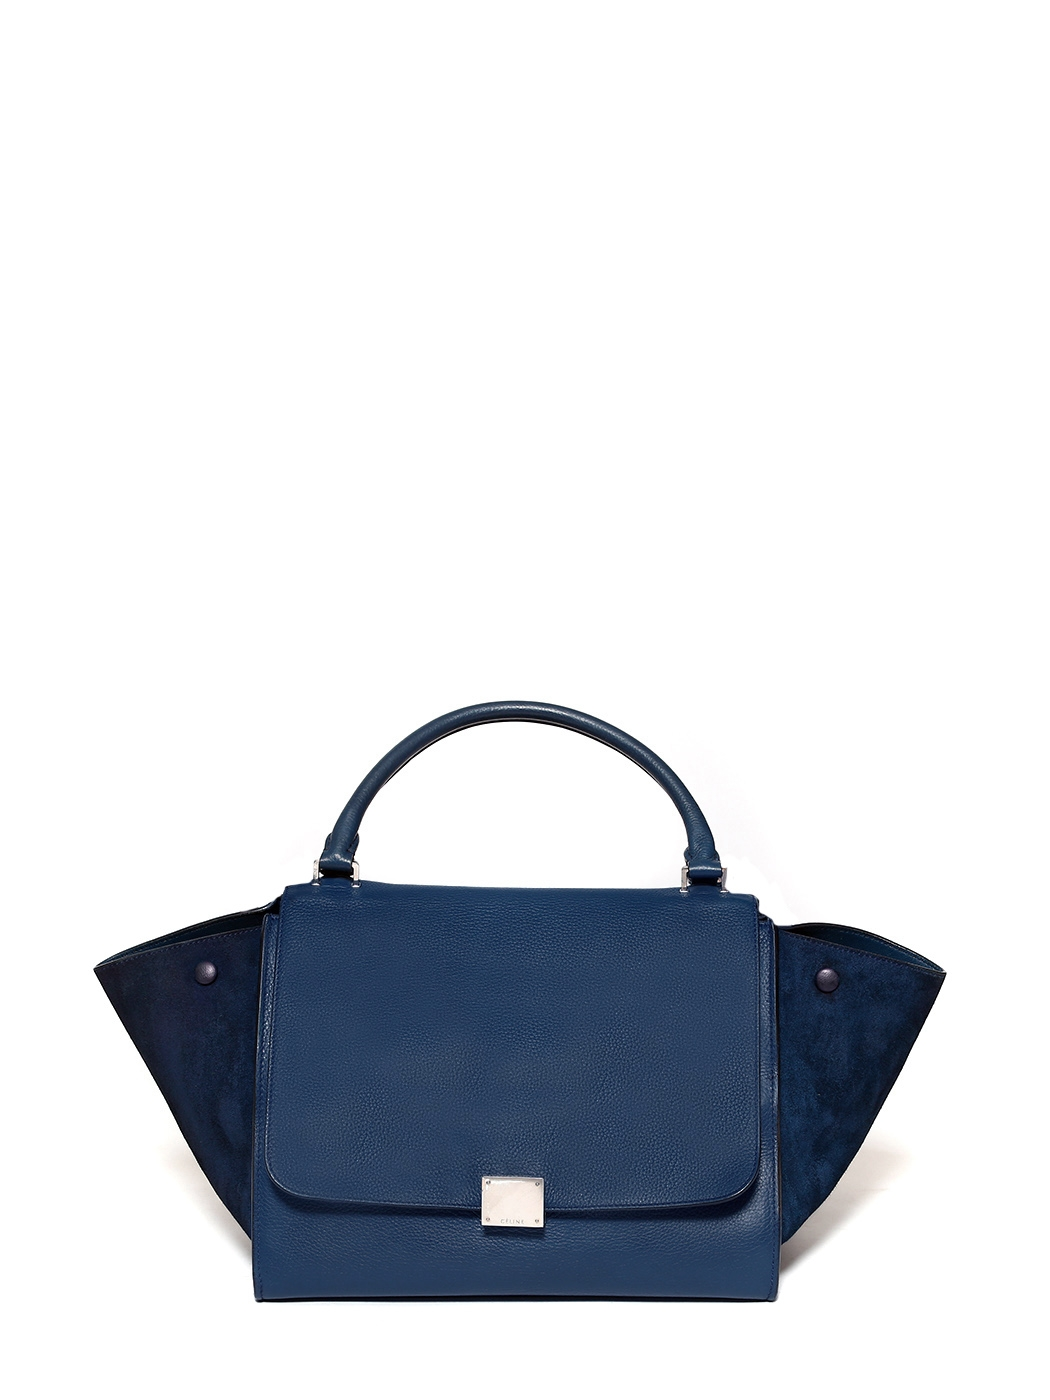 Medium size blue grained and suede leather TRAPEZE handbag with strap  Retail price €2200 ... be6b285ff87de